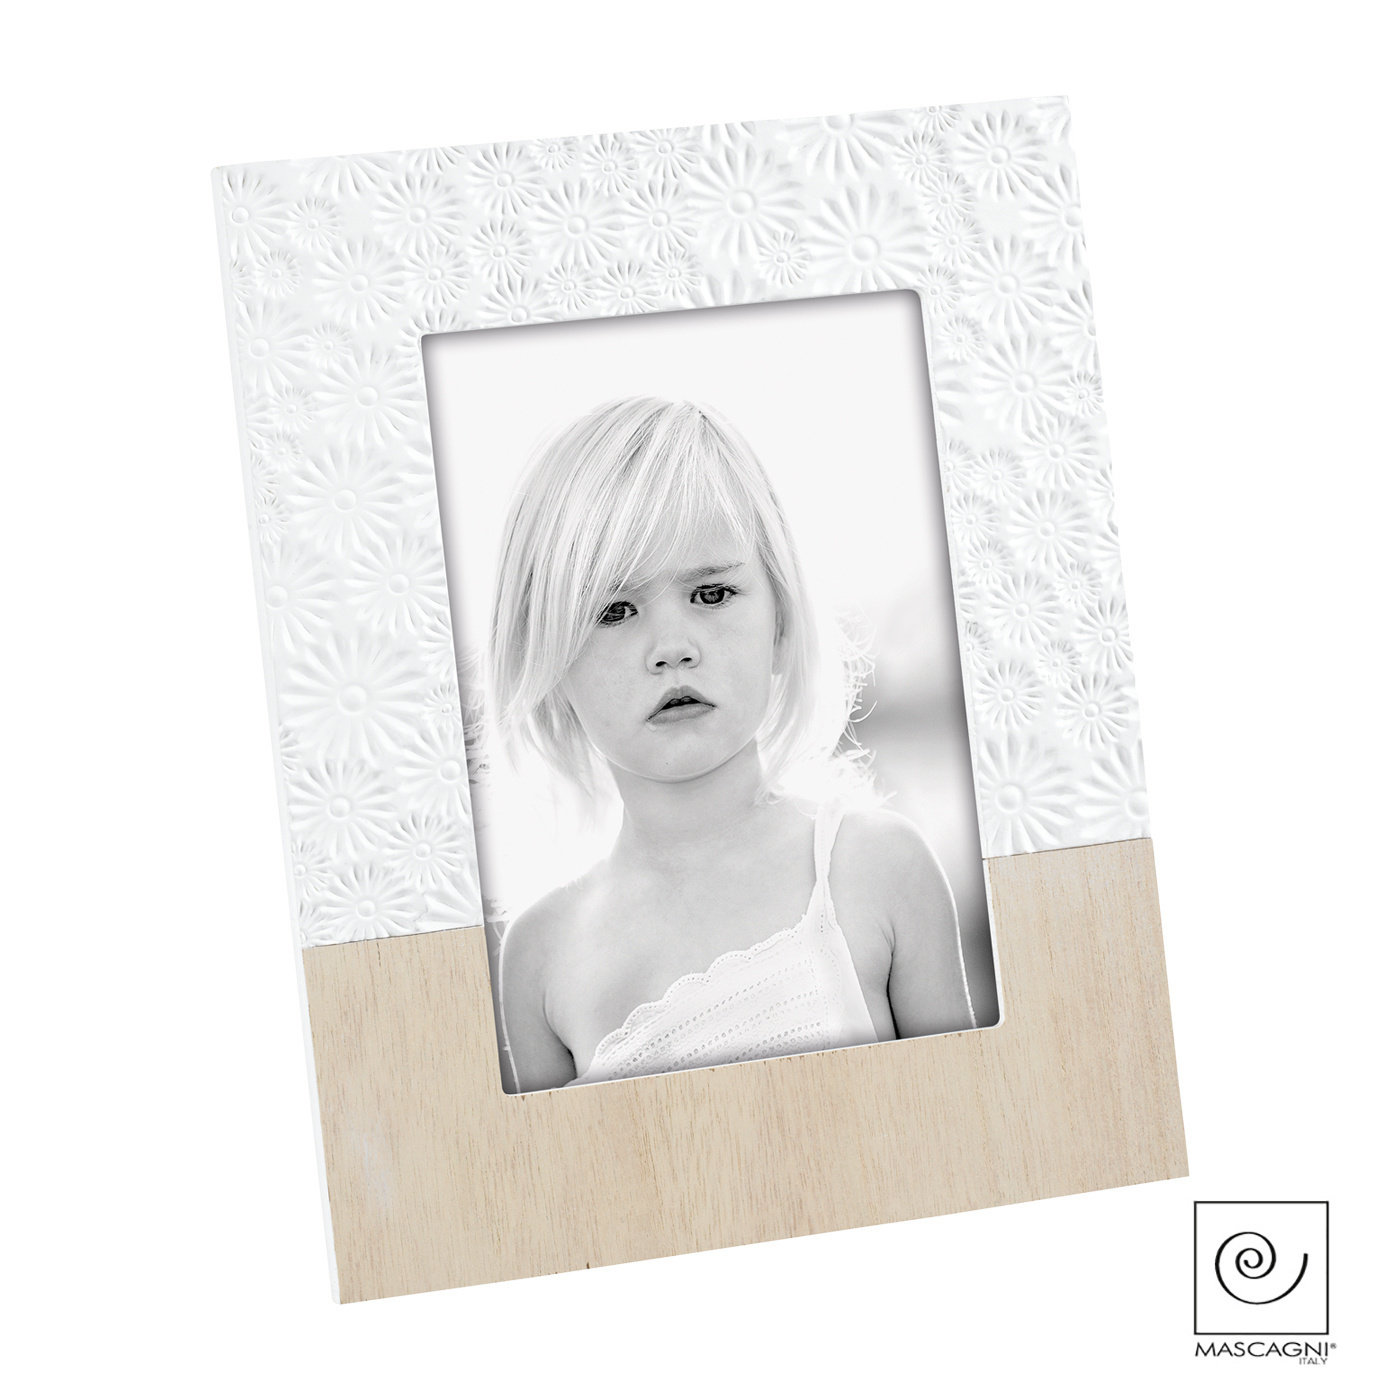 Art Mascagni A1072 PHOTO FRAME 10X15 - COL.WHITE